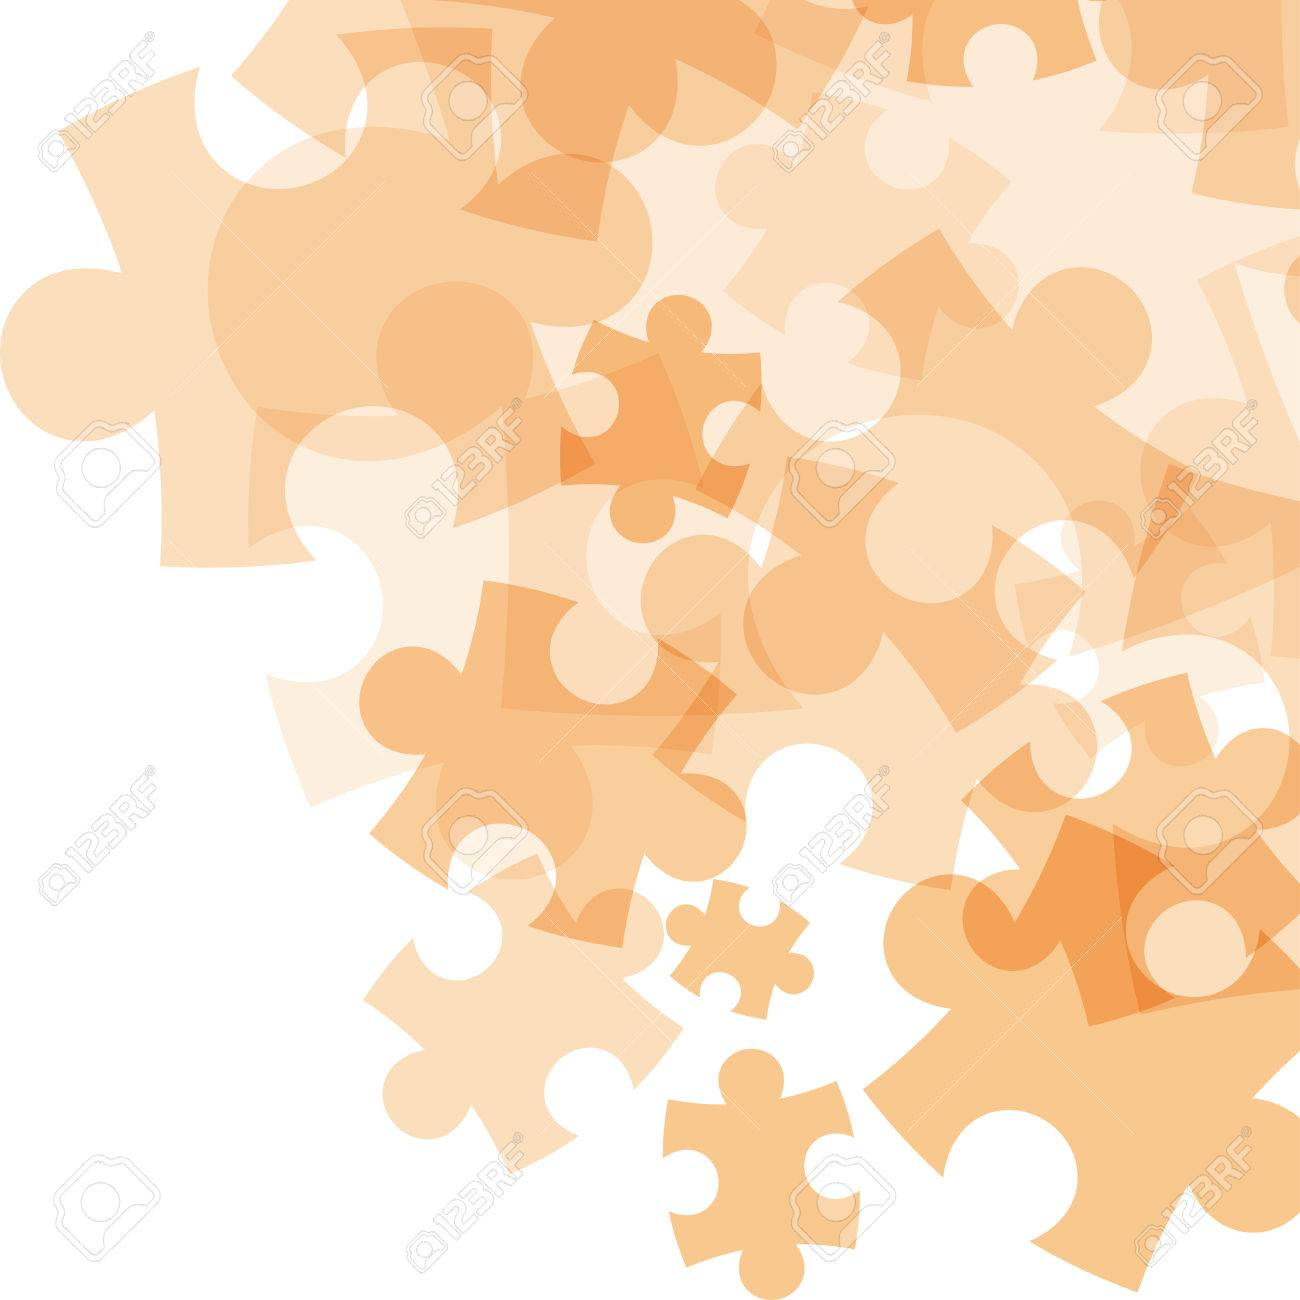 Abstract monocolor puzzle background. Vector graphic template. - 41742524